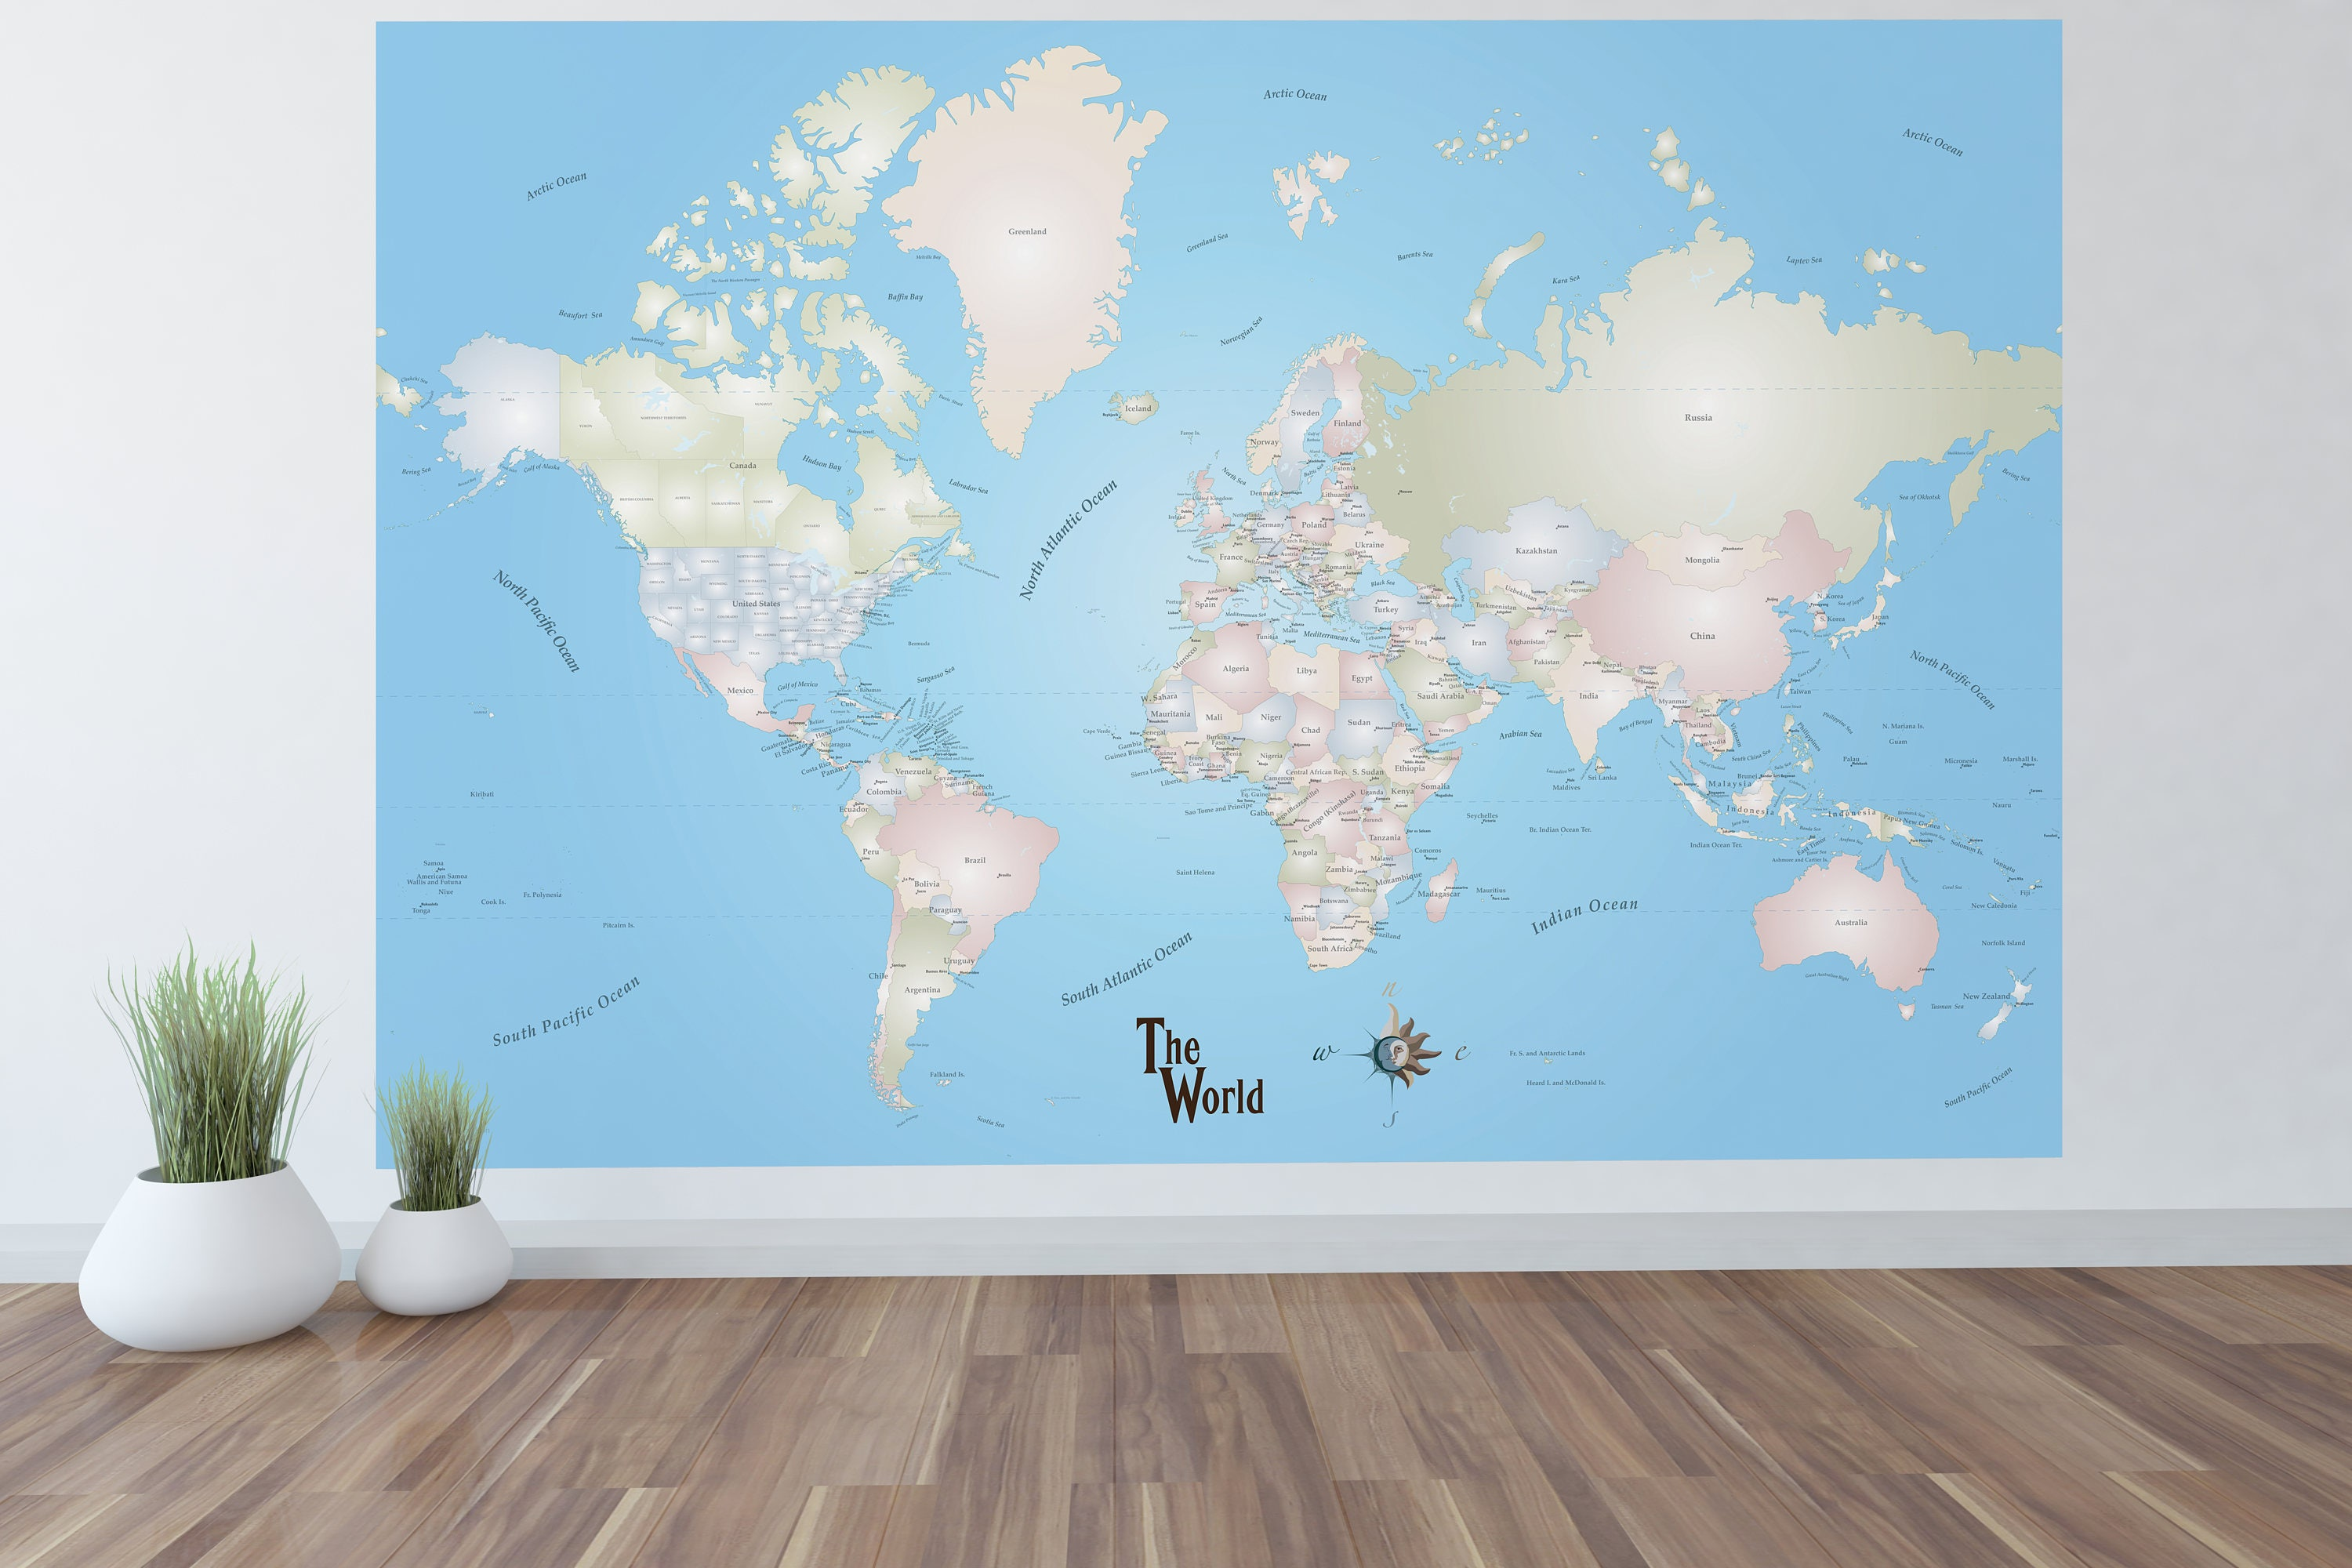 Giant world map mural stylish and educational world map wall art giant world map mural stylish and educational world map wall art world map decal 72x48 with capitols gumiabroncs